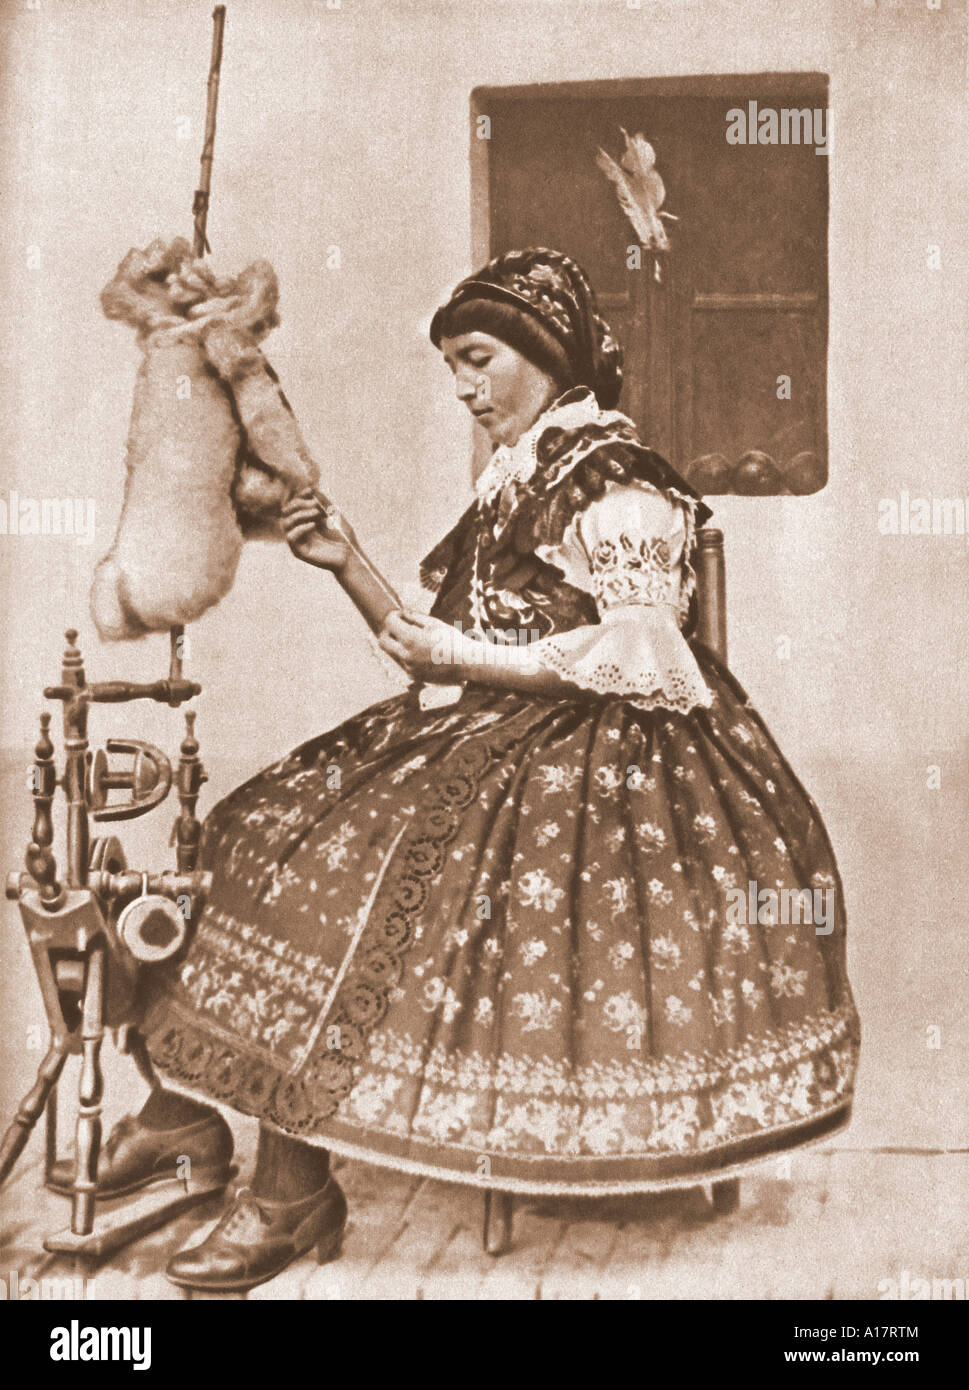 Historical Photograph of Magyar Woman at Spinning Wheel in Traditional Dress - Stock Image